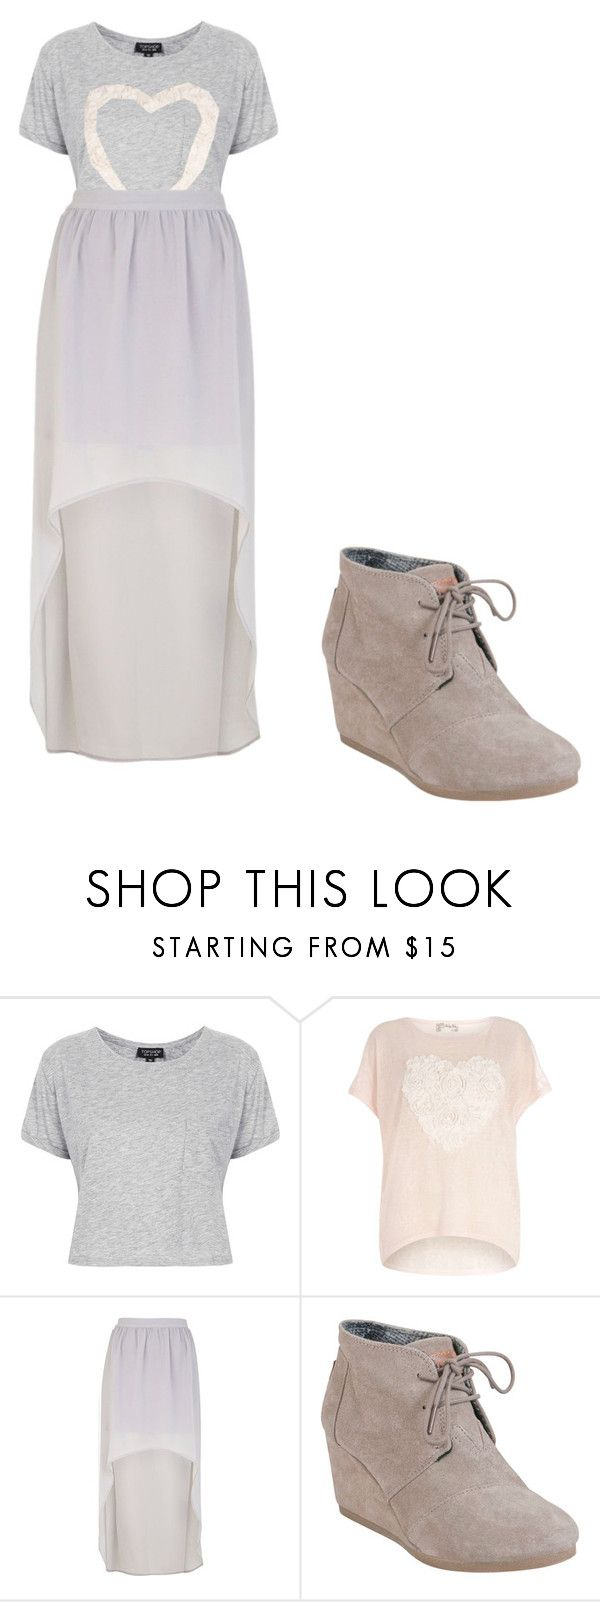 """violetta 2"" by maria-look ❤ liked on Polyvore featuring Topshop, Voulez Vous, River Island, TOMS, women's clothing, women, female, woman, misses and juniors"